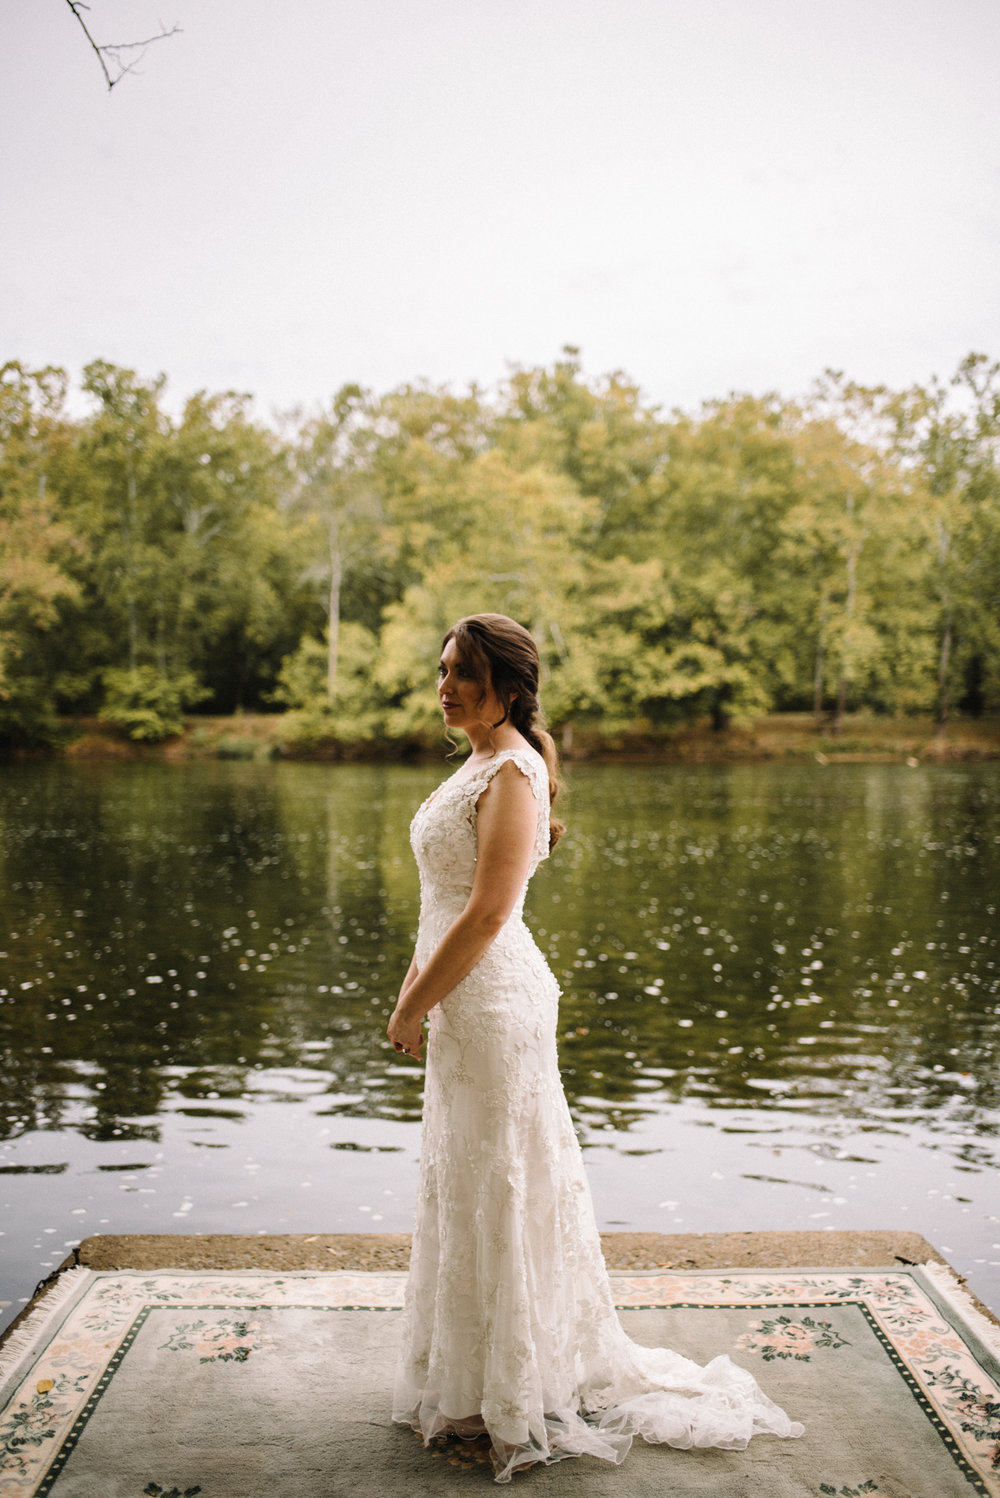 Mandi-and-Jordan-Intimate-Backyard-River-Wedding-Shenandoah-Valley_60.JPG